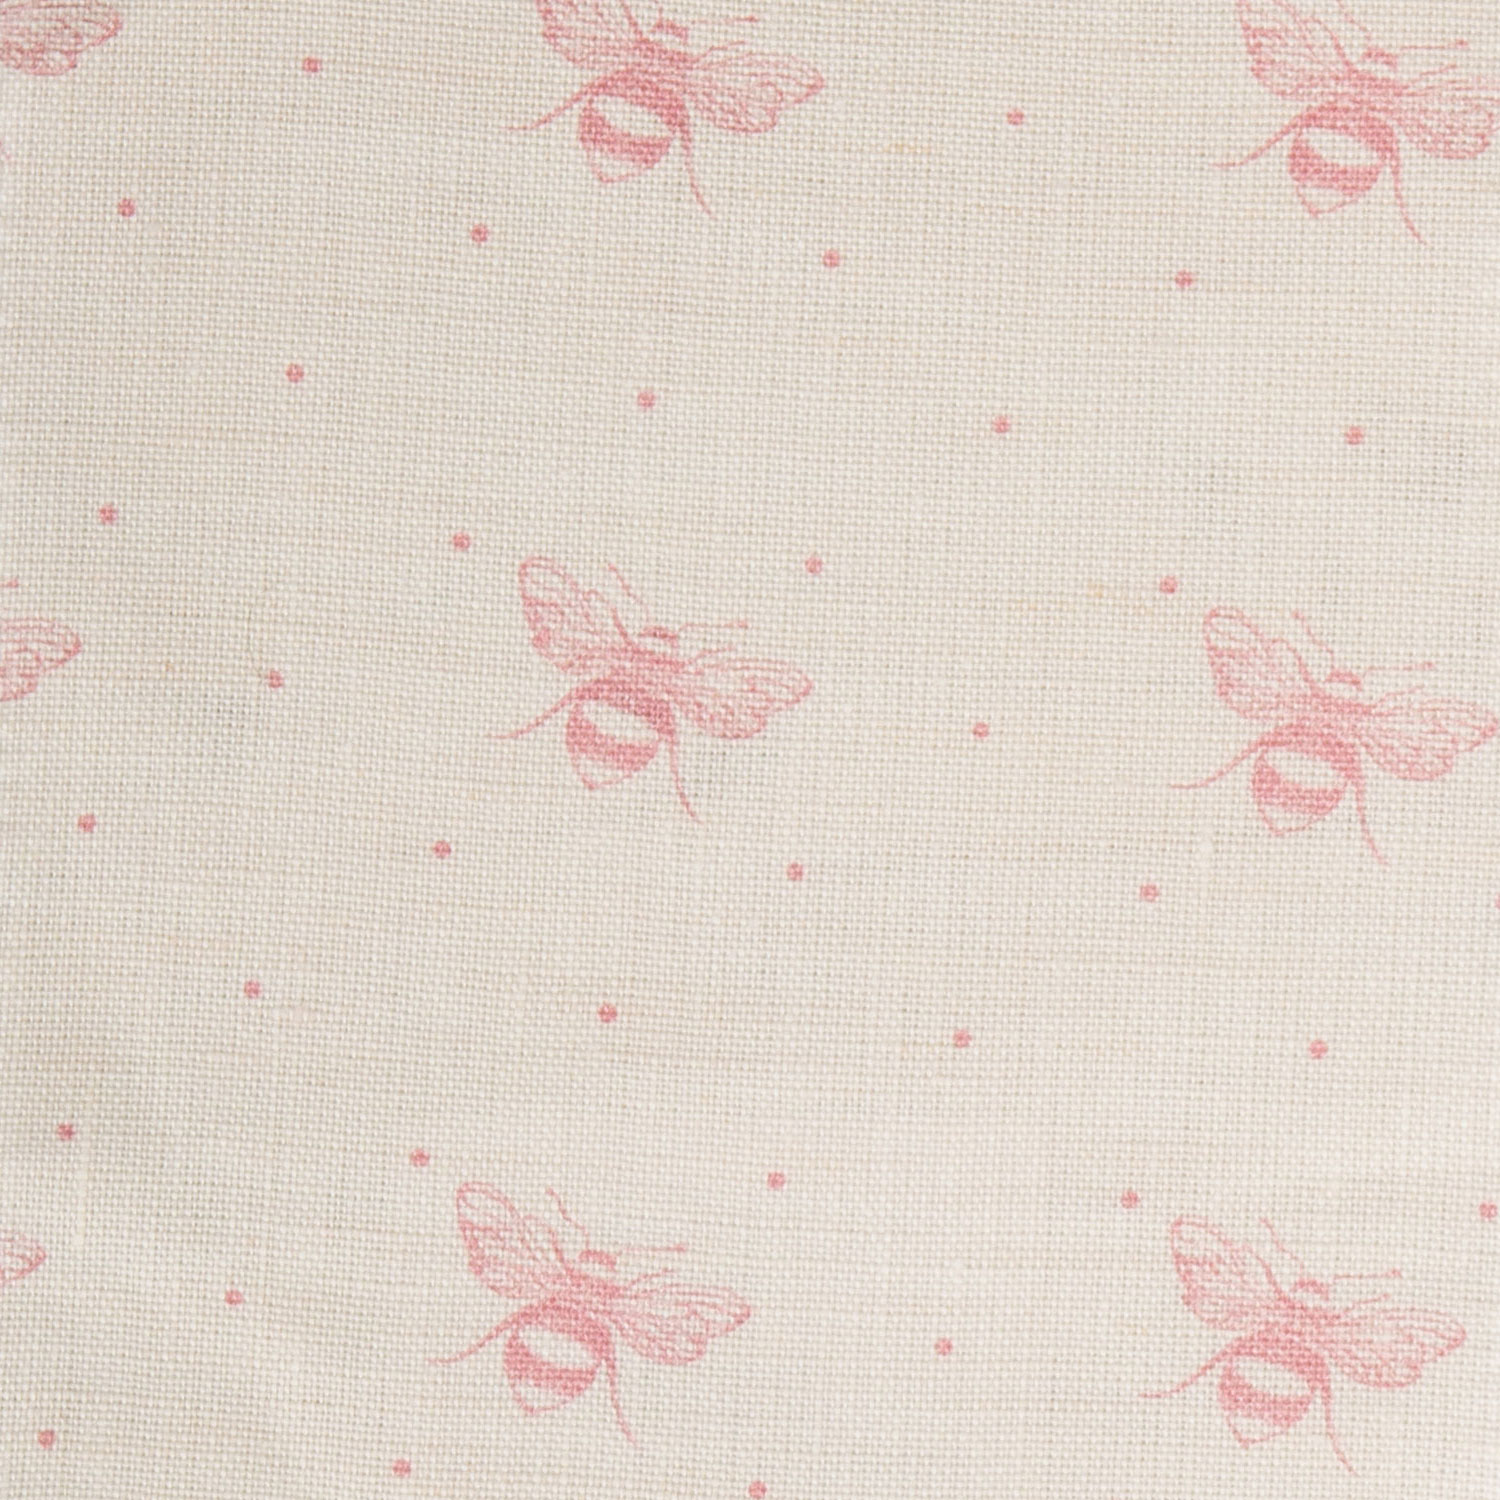 Just Bees, Blush Pink on Ivory